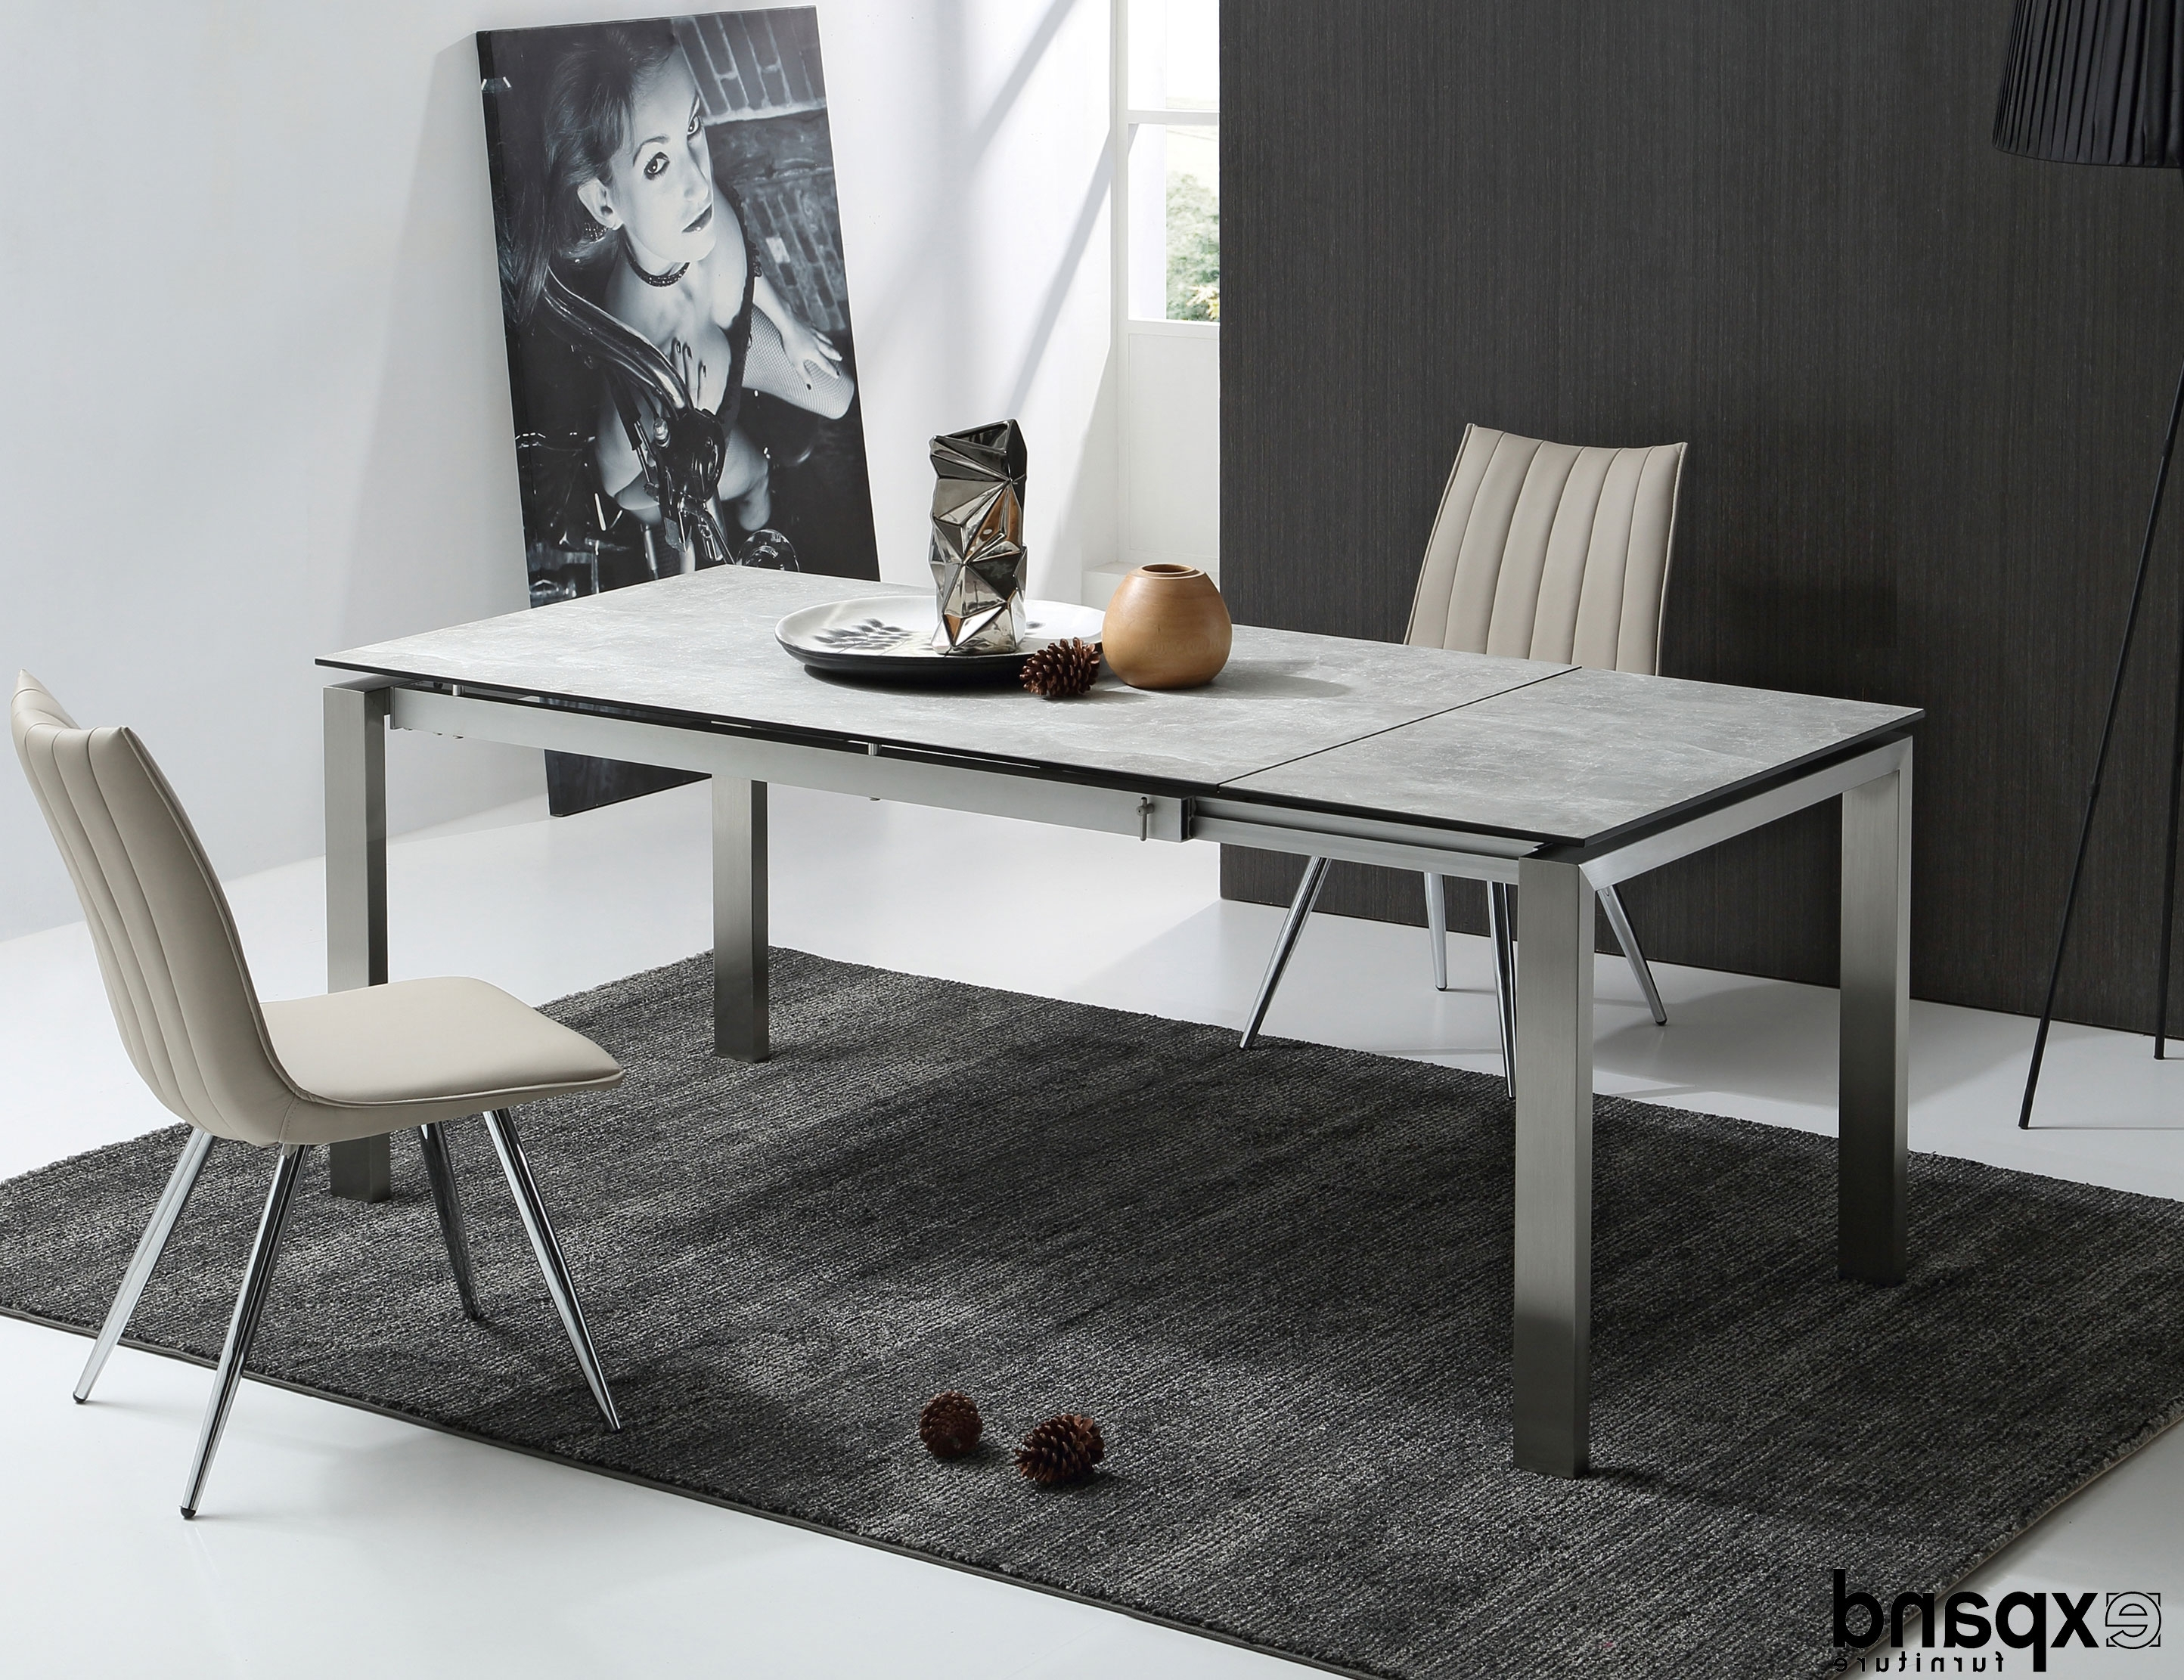 The Slate: Grey Ceramic Glass Top Table Throughout Best And Newest Glass Extending Dining Tables (View 21 of 25)